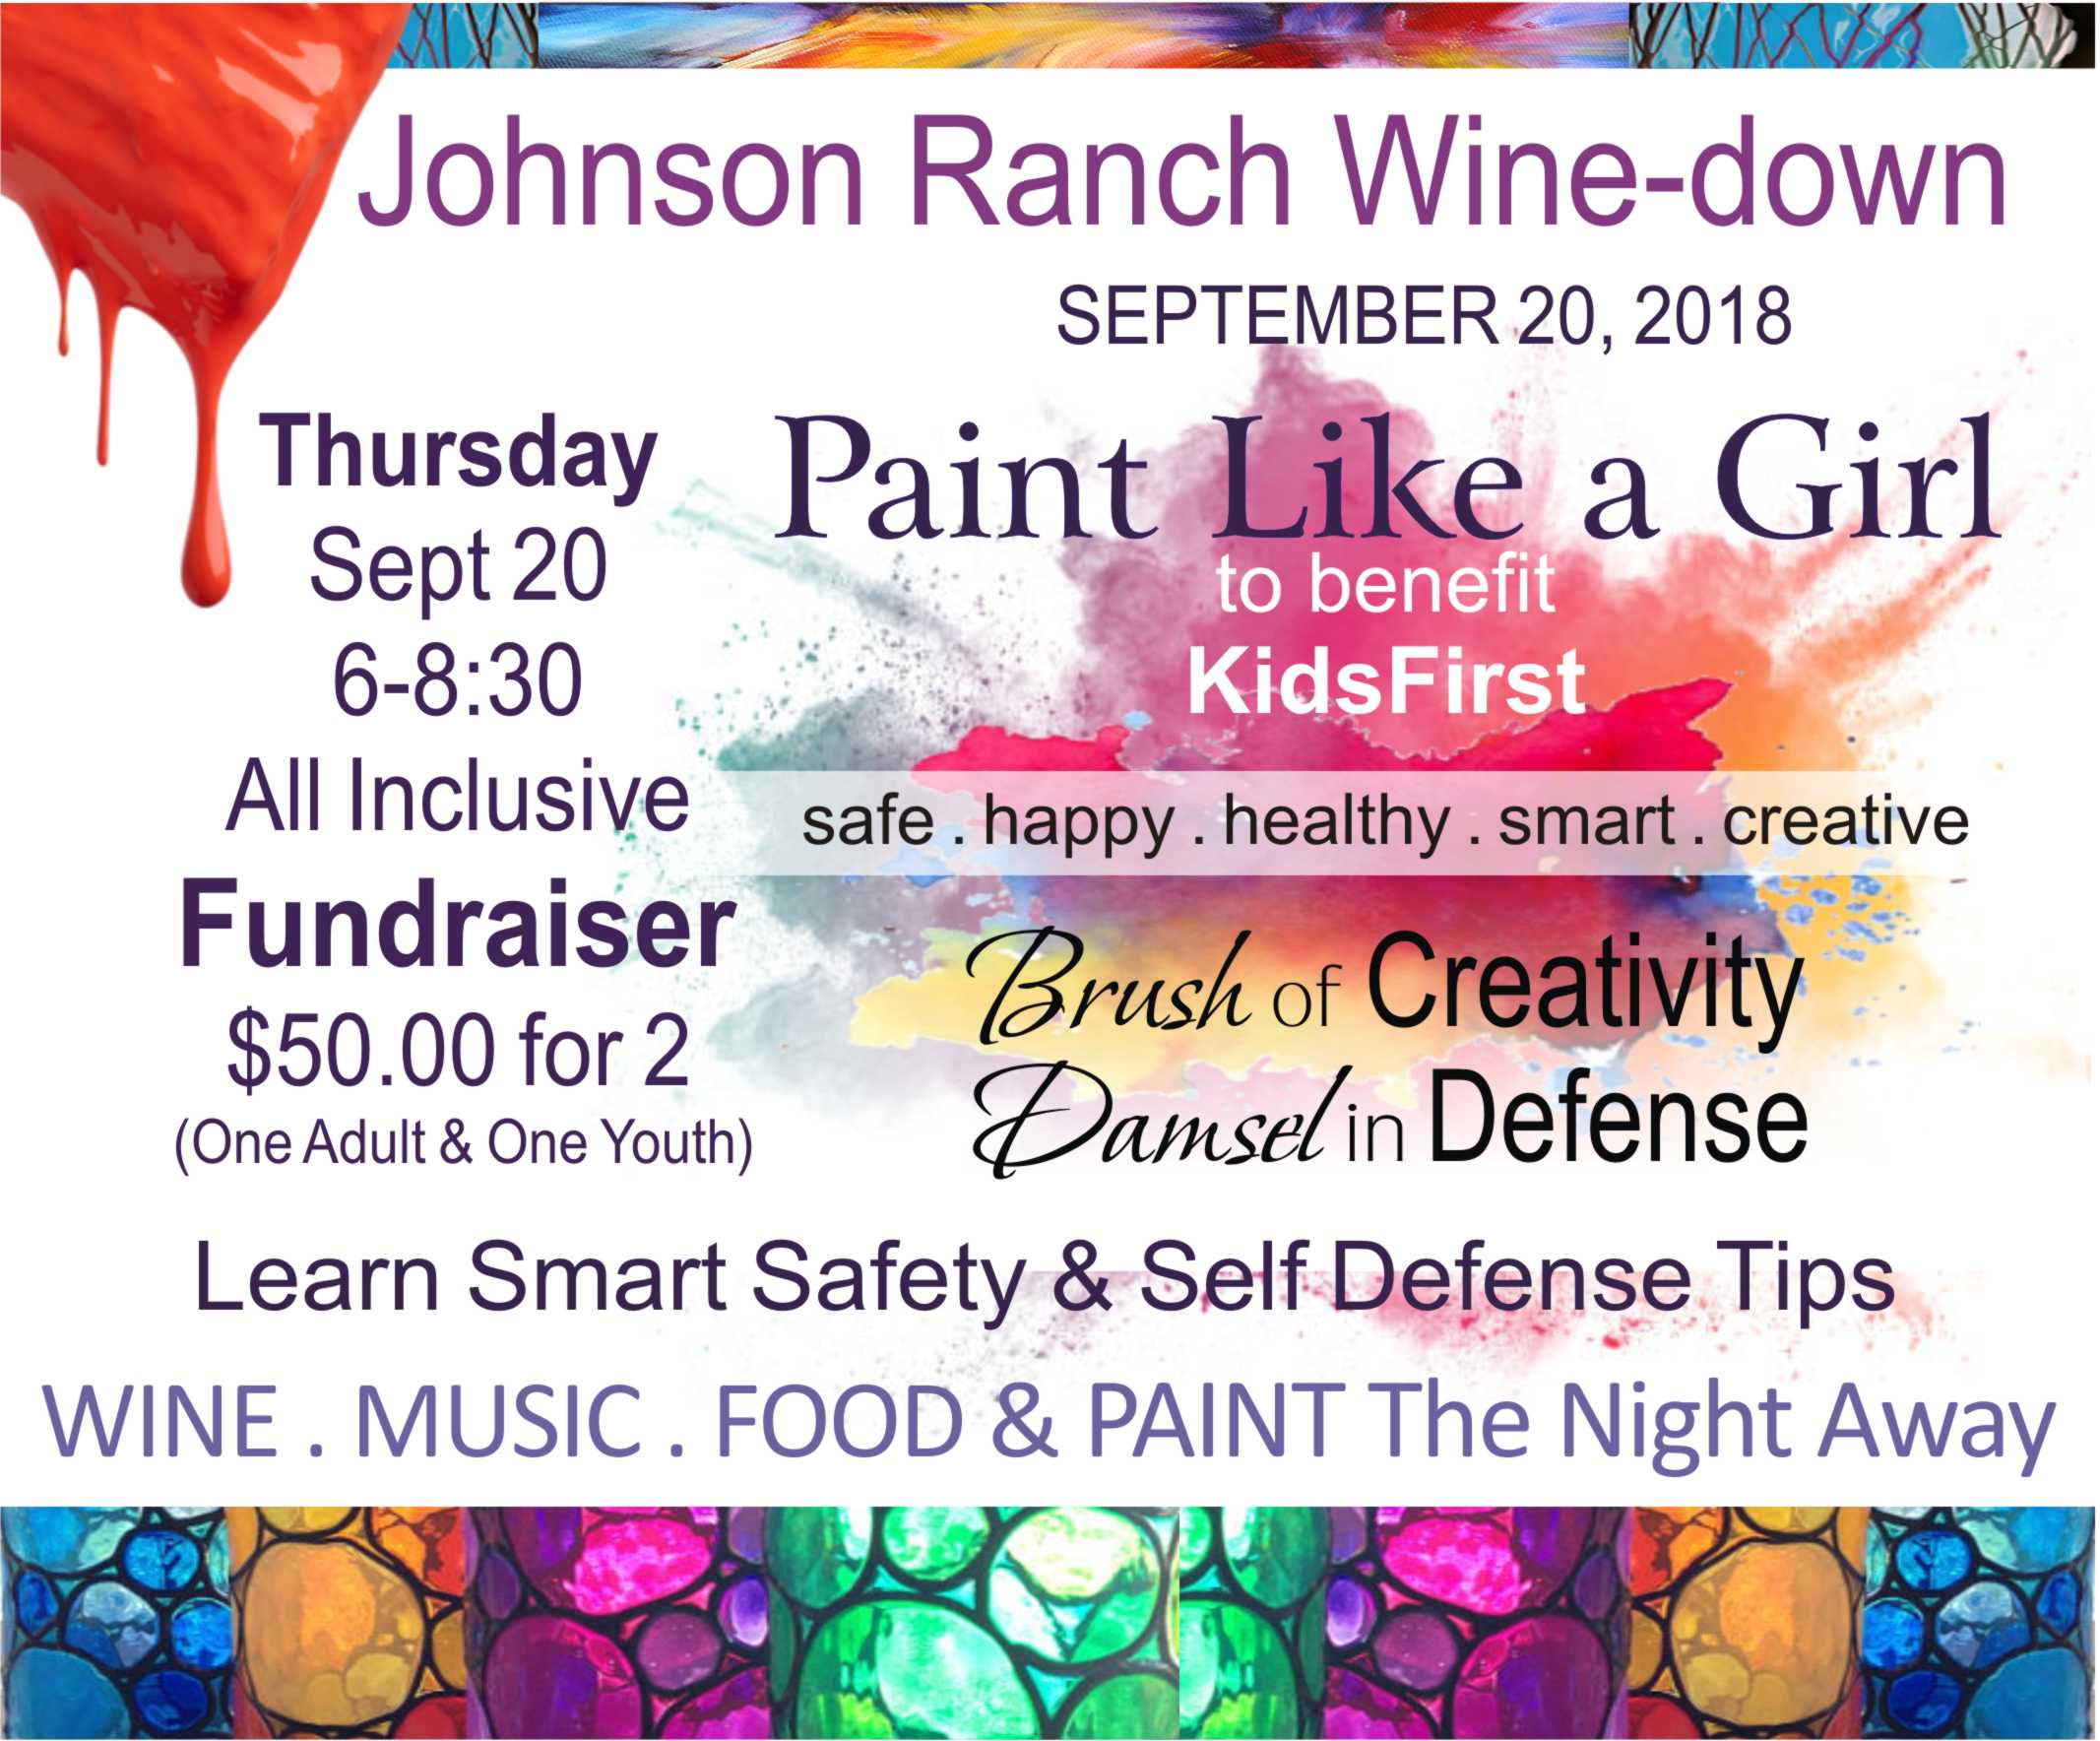 Jr 20boc 20winedw 20thurs 20fundraiser 20flyer 20 209 2018